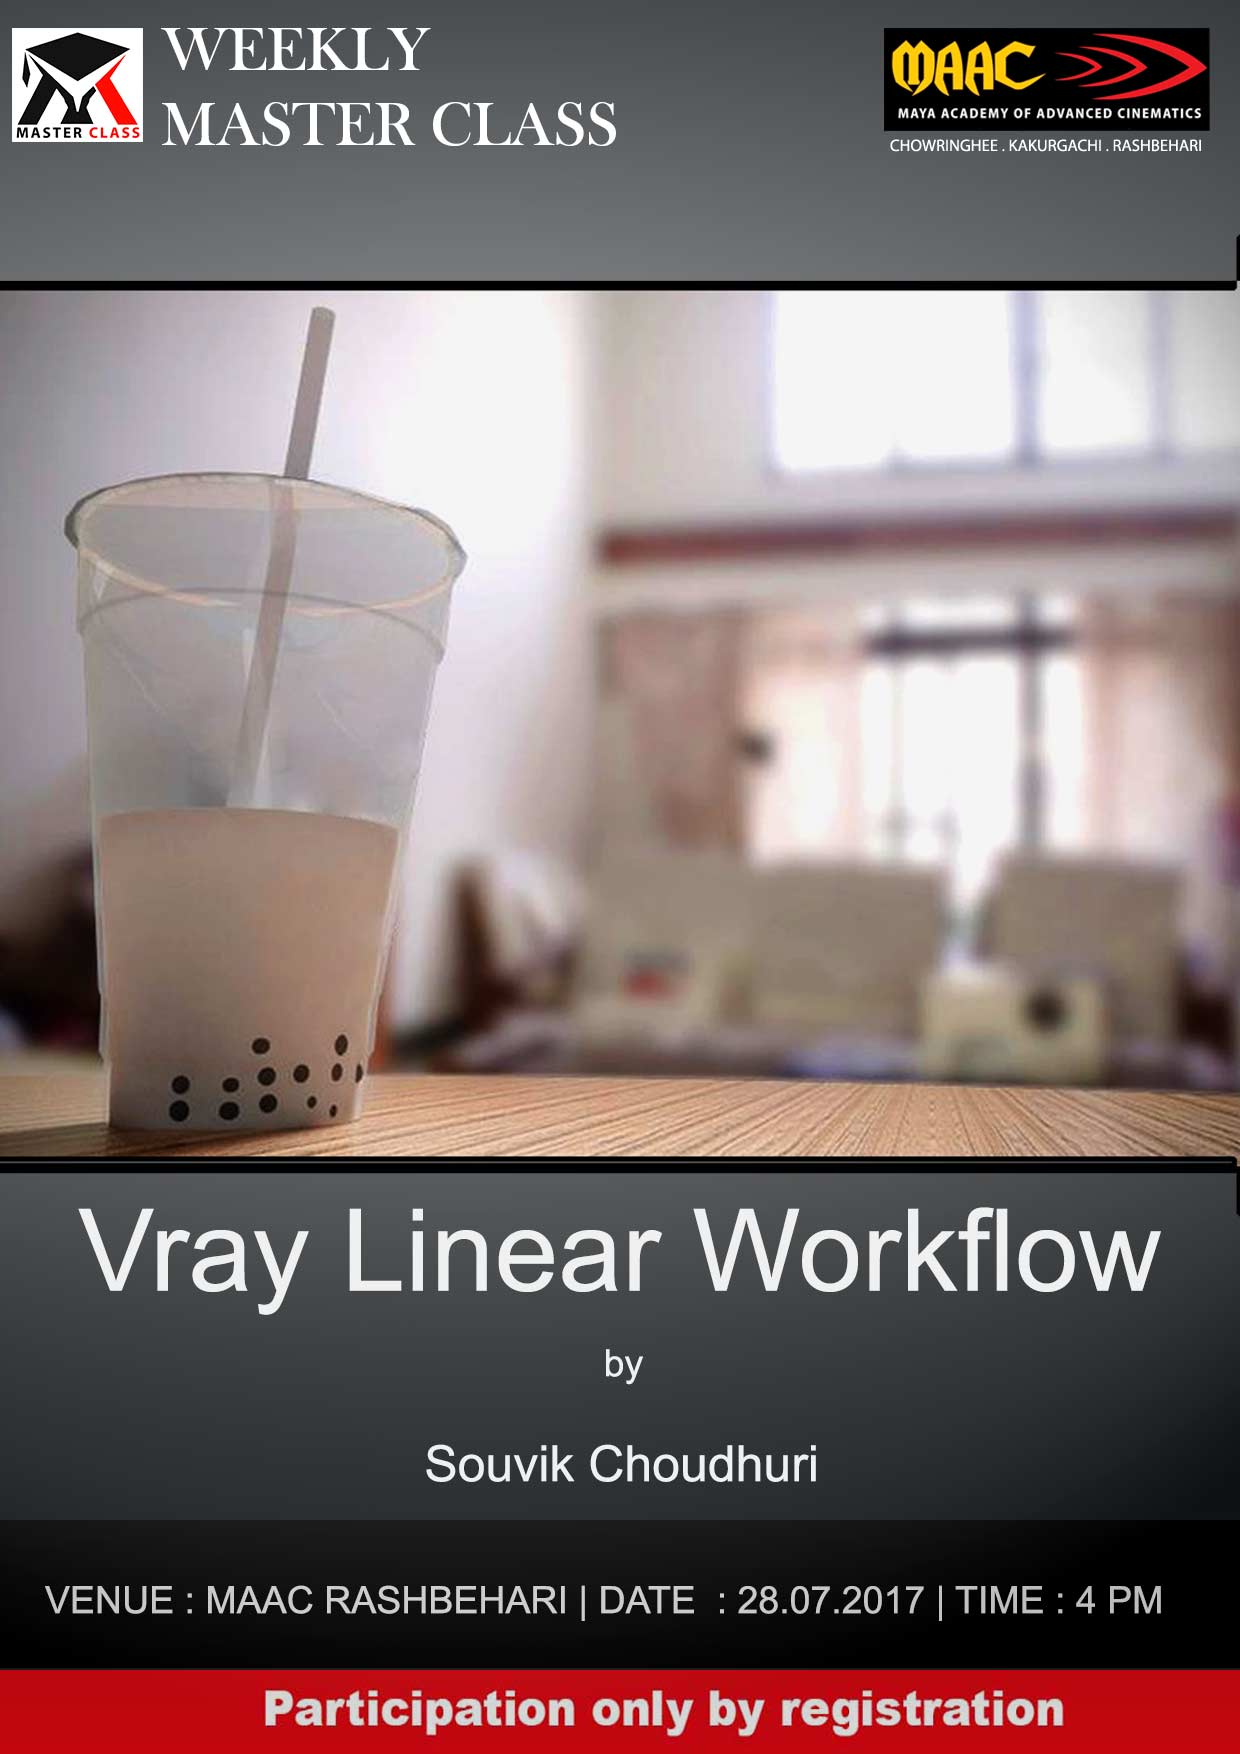 Weekly Master Class on Vray Linear Workflow